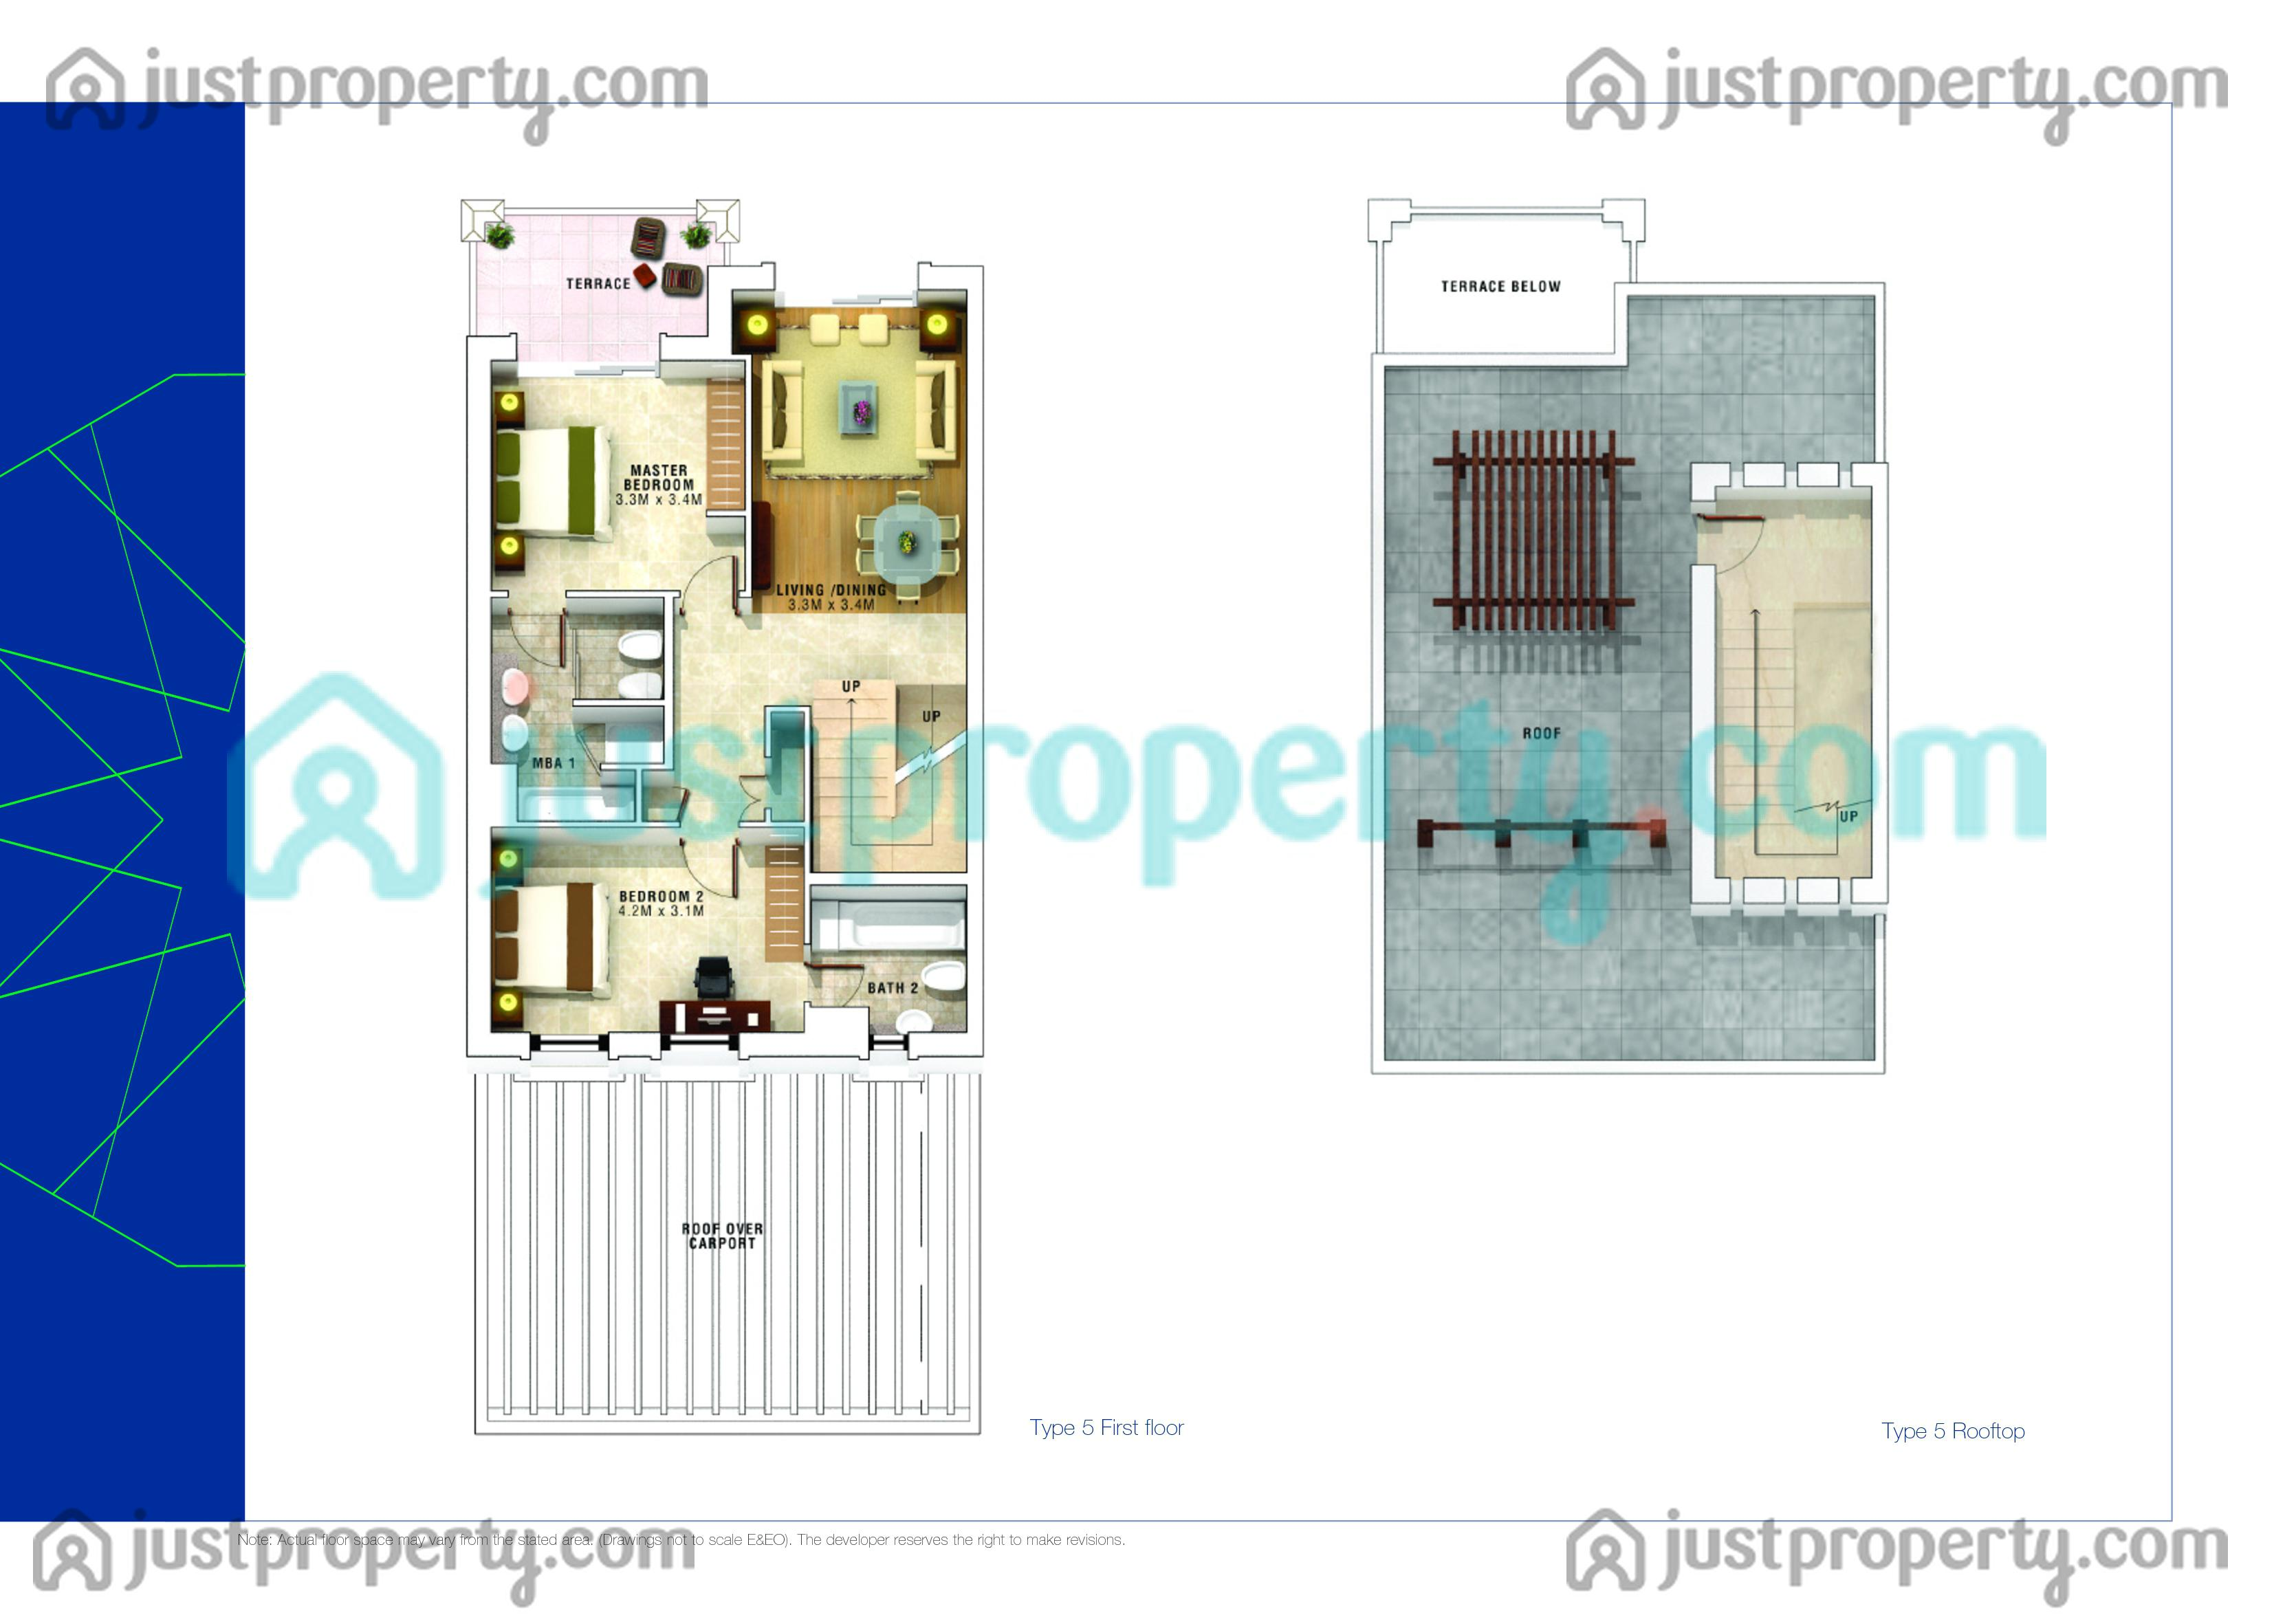 Maisonettes%2Bplan%2B %2Bgood%2Bwithout%2Btypes%2B1%252C%2B9%252C%2B10 010 010 Top Result 50 Inspirational House Plans with Photos One Story